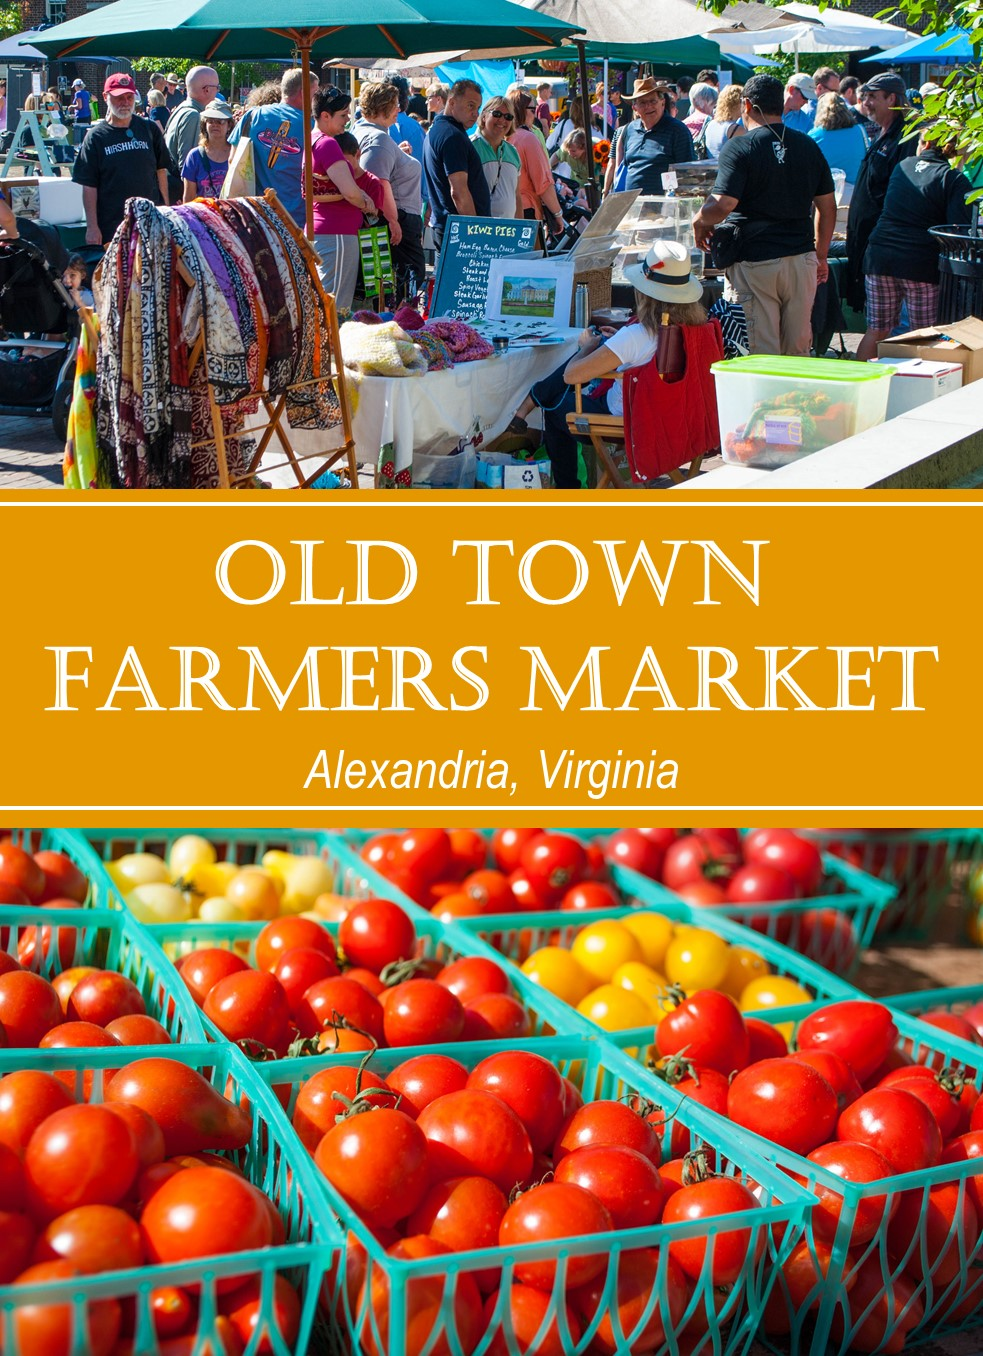 The Old Town Farmers Market in Alexandria, Virginia, is the oldest continuously-running farmers market in the country. Just ask George Washington!